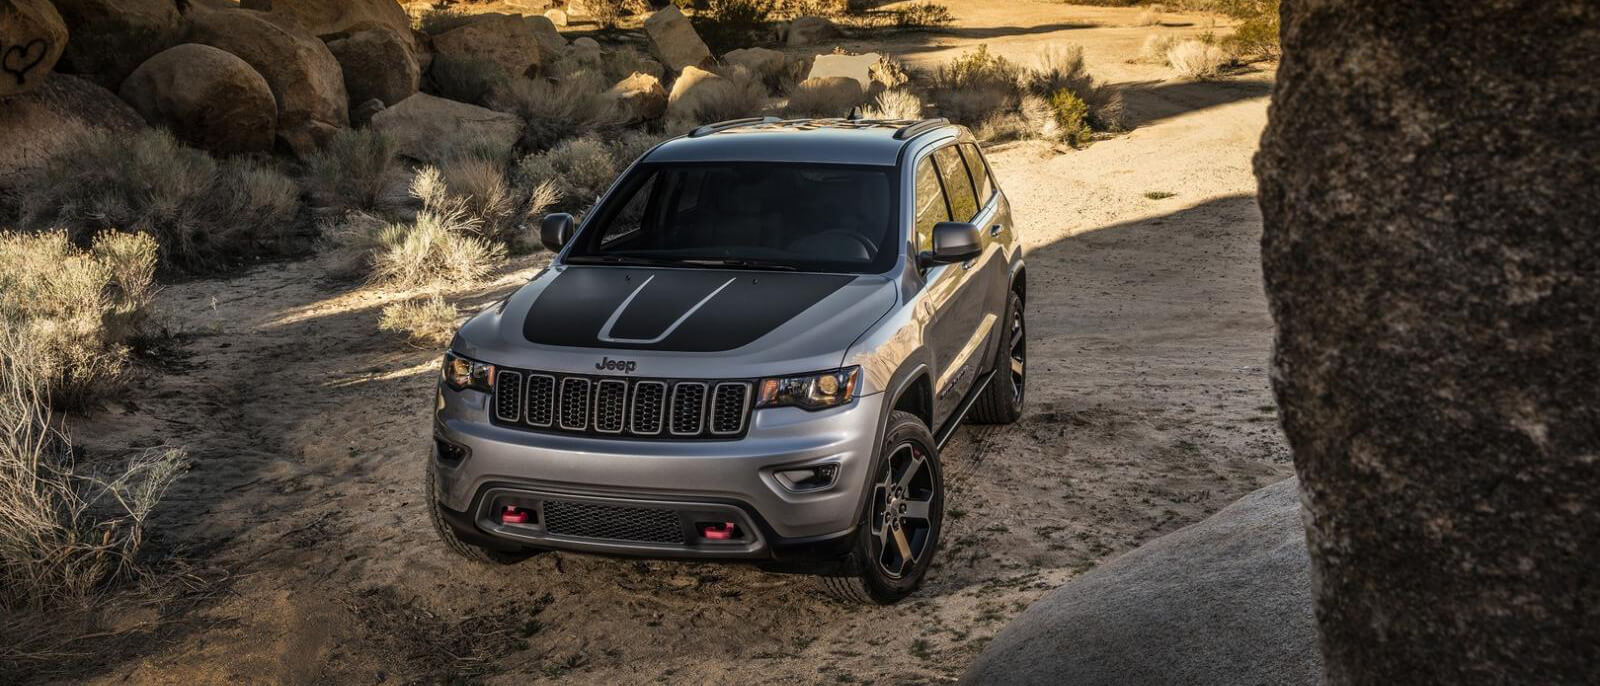 2017 Jeep Grand Cherokee Desert